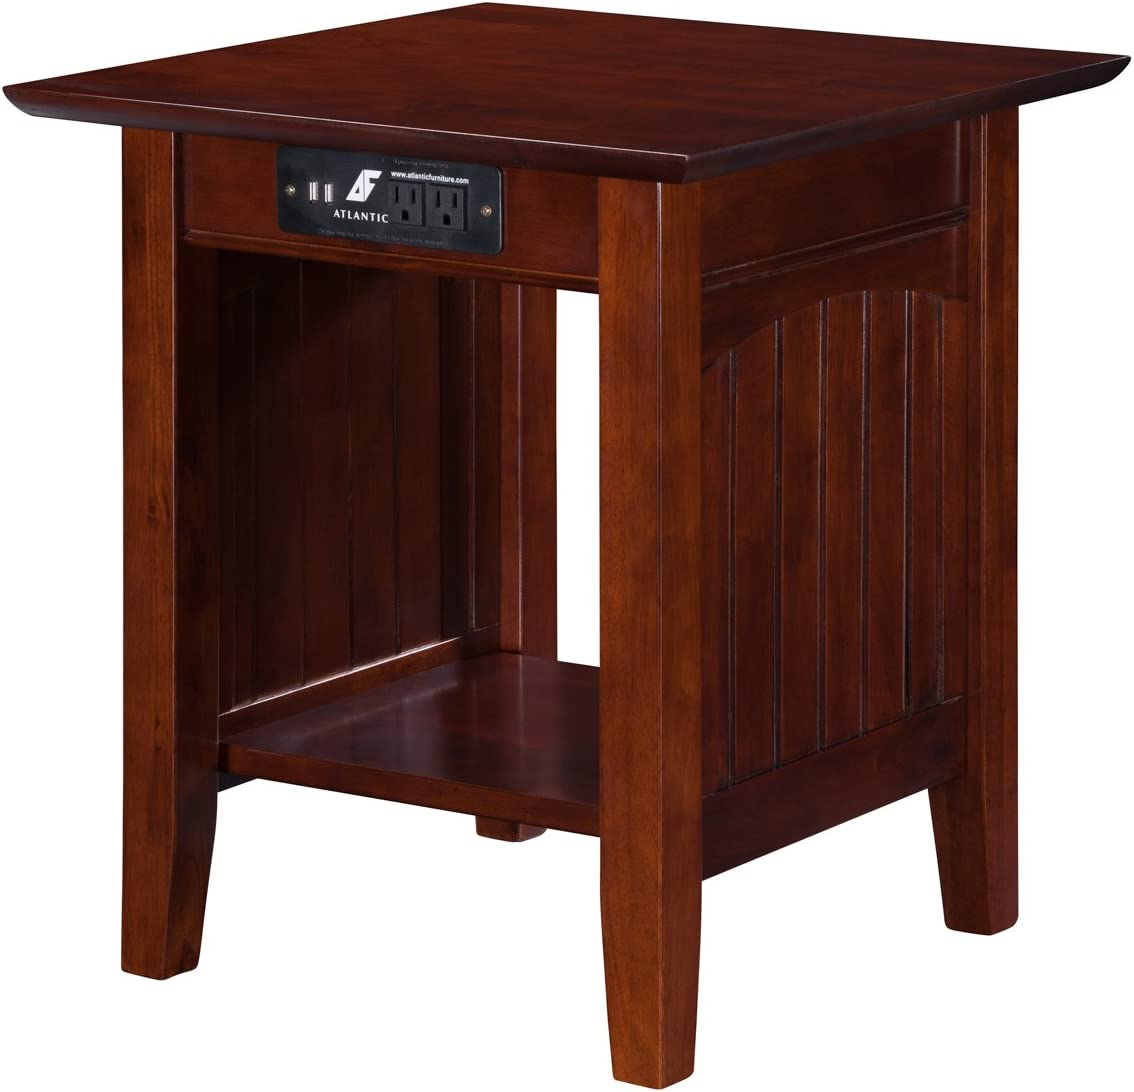 Atlantic Furniture Nantucket End Table with Charging Station, Walnut